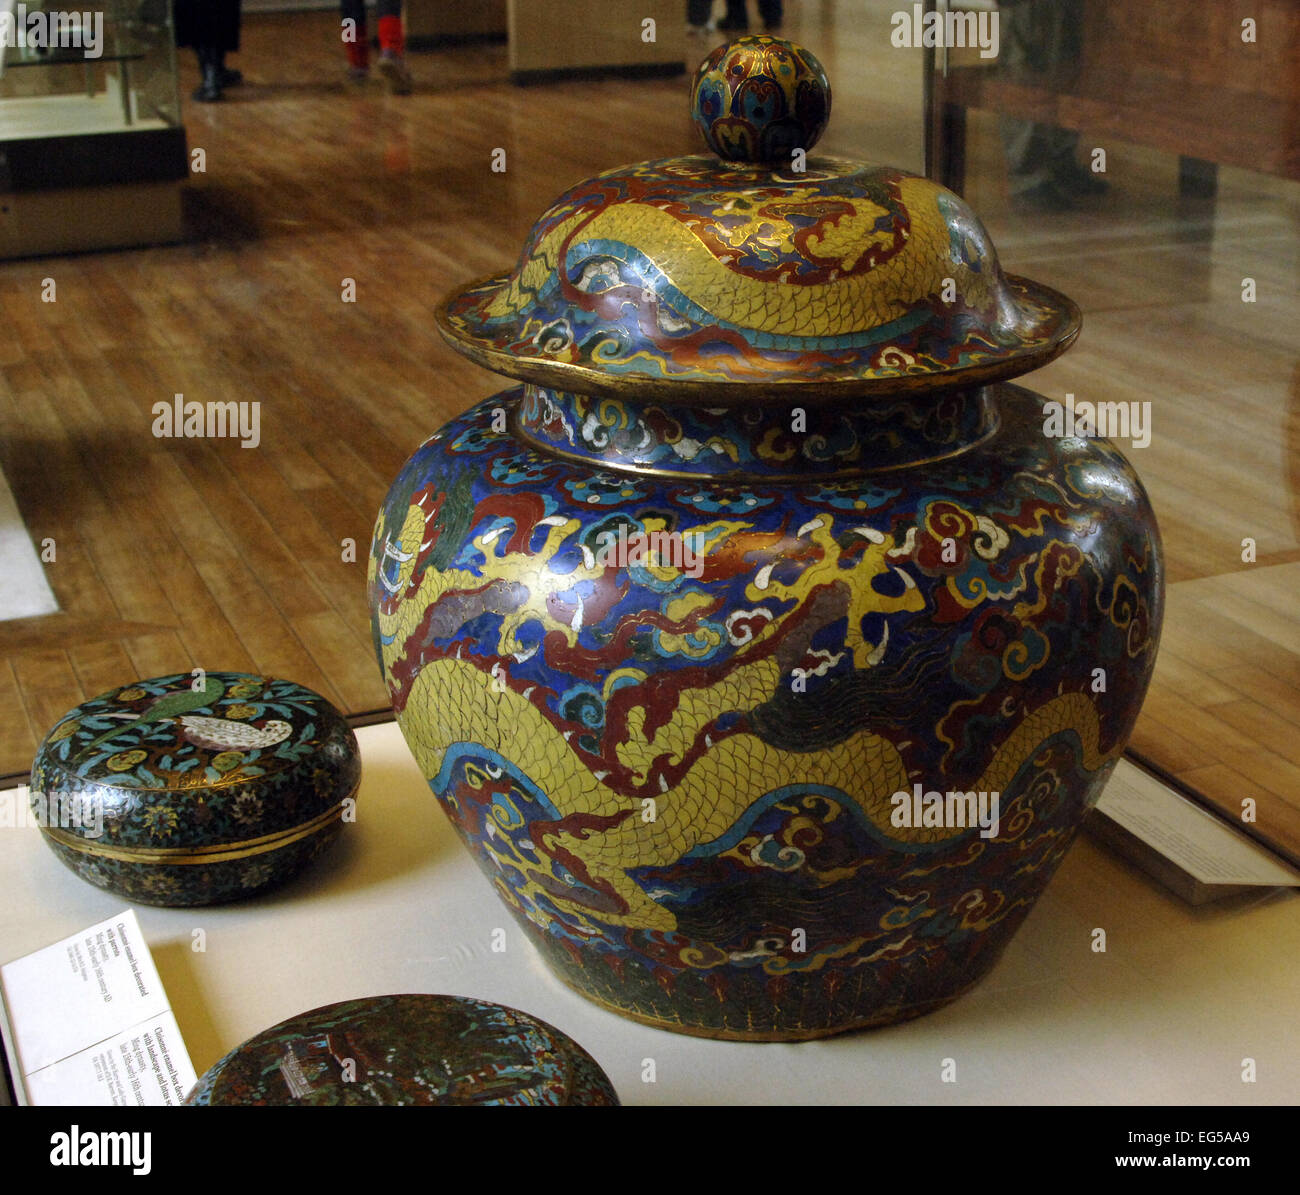 Asia china cloisonne jar ming dynasty xuande period 1426 35 cloisonne jar ming dynasty xuande period 1426 35 ad boldy decorated jar with imperial mark british museum london england united kingdom reviewsmspy